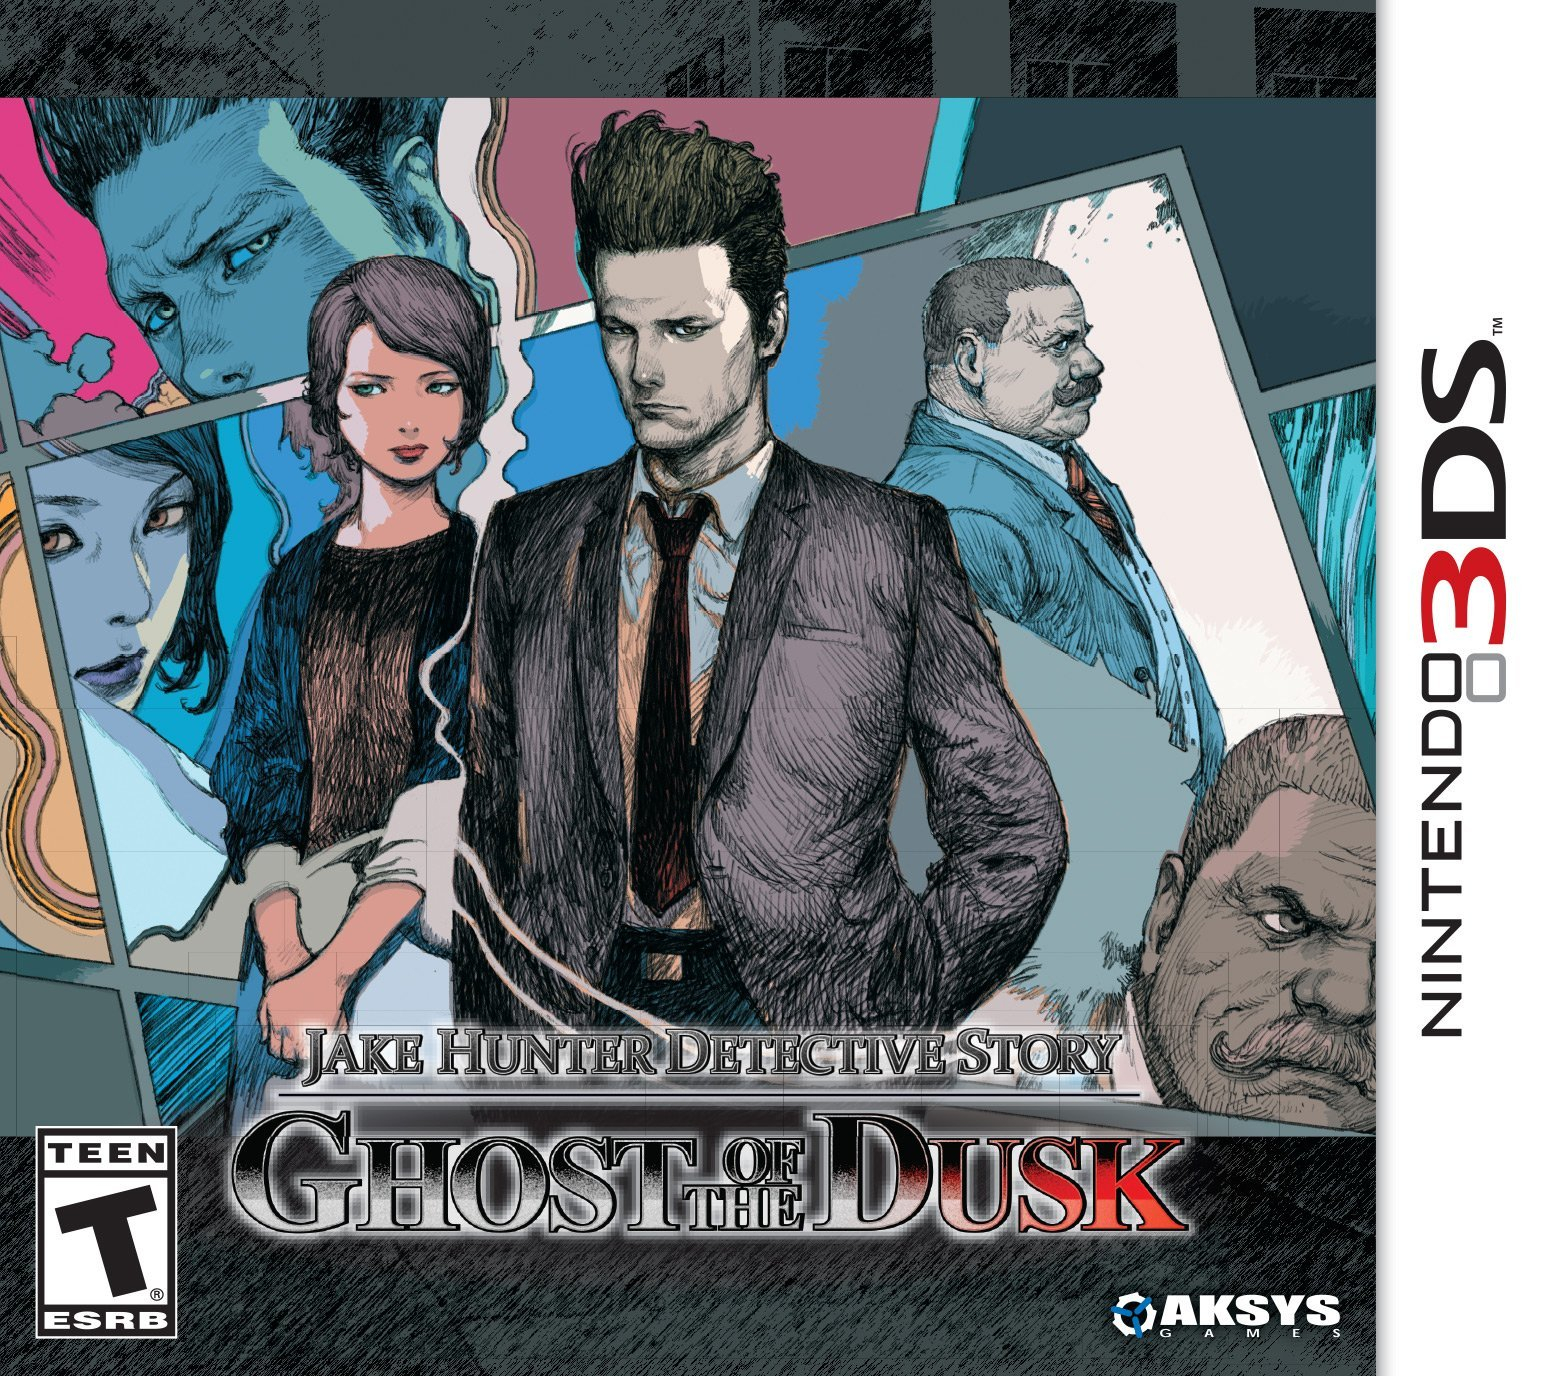 Jake Hunter Detective Story: Ghost of the Dusk Masthead